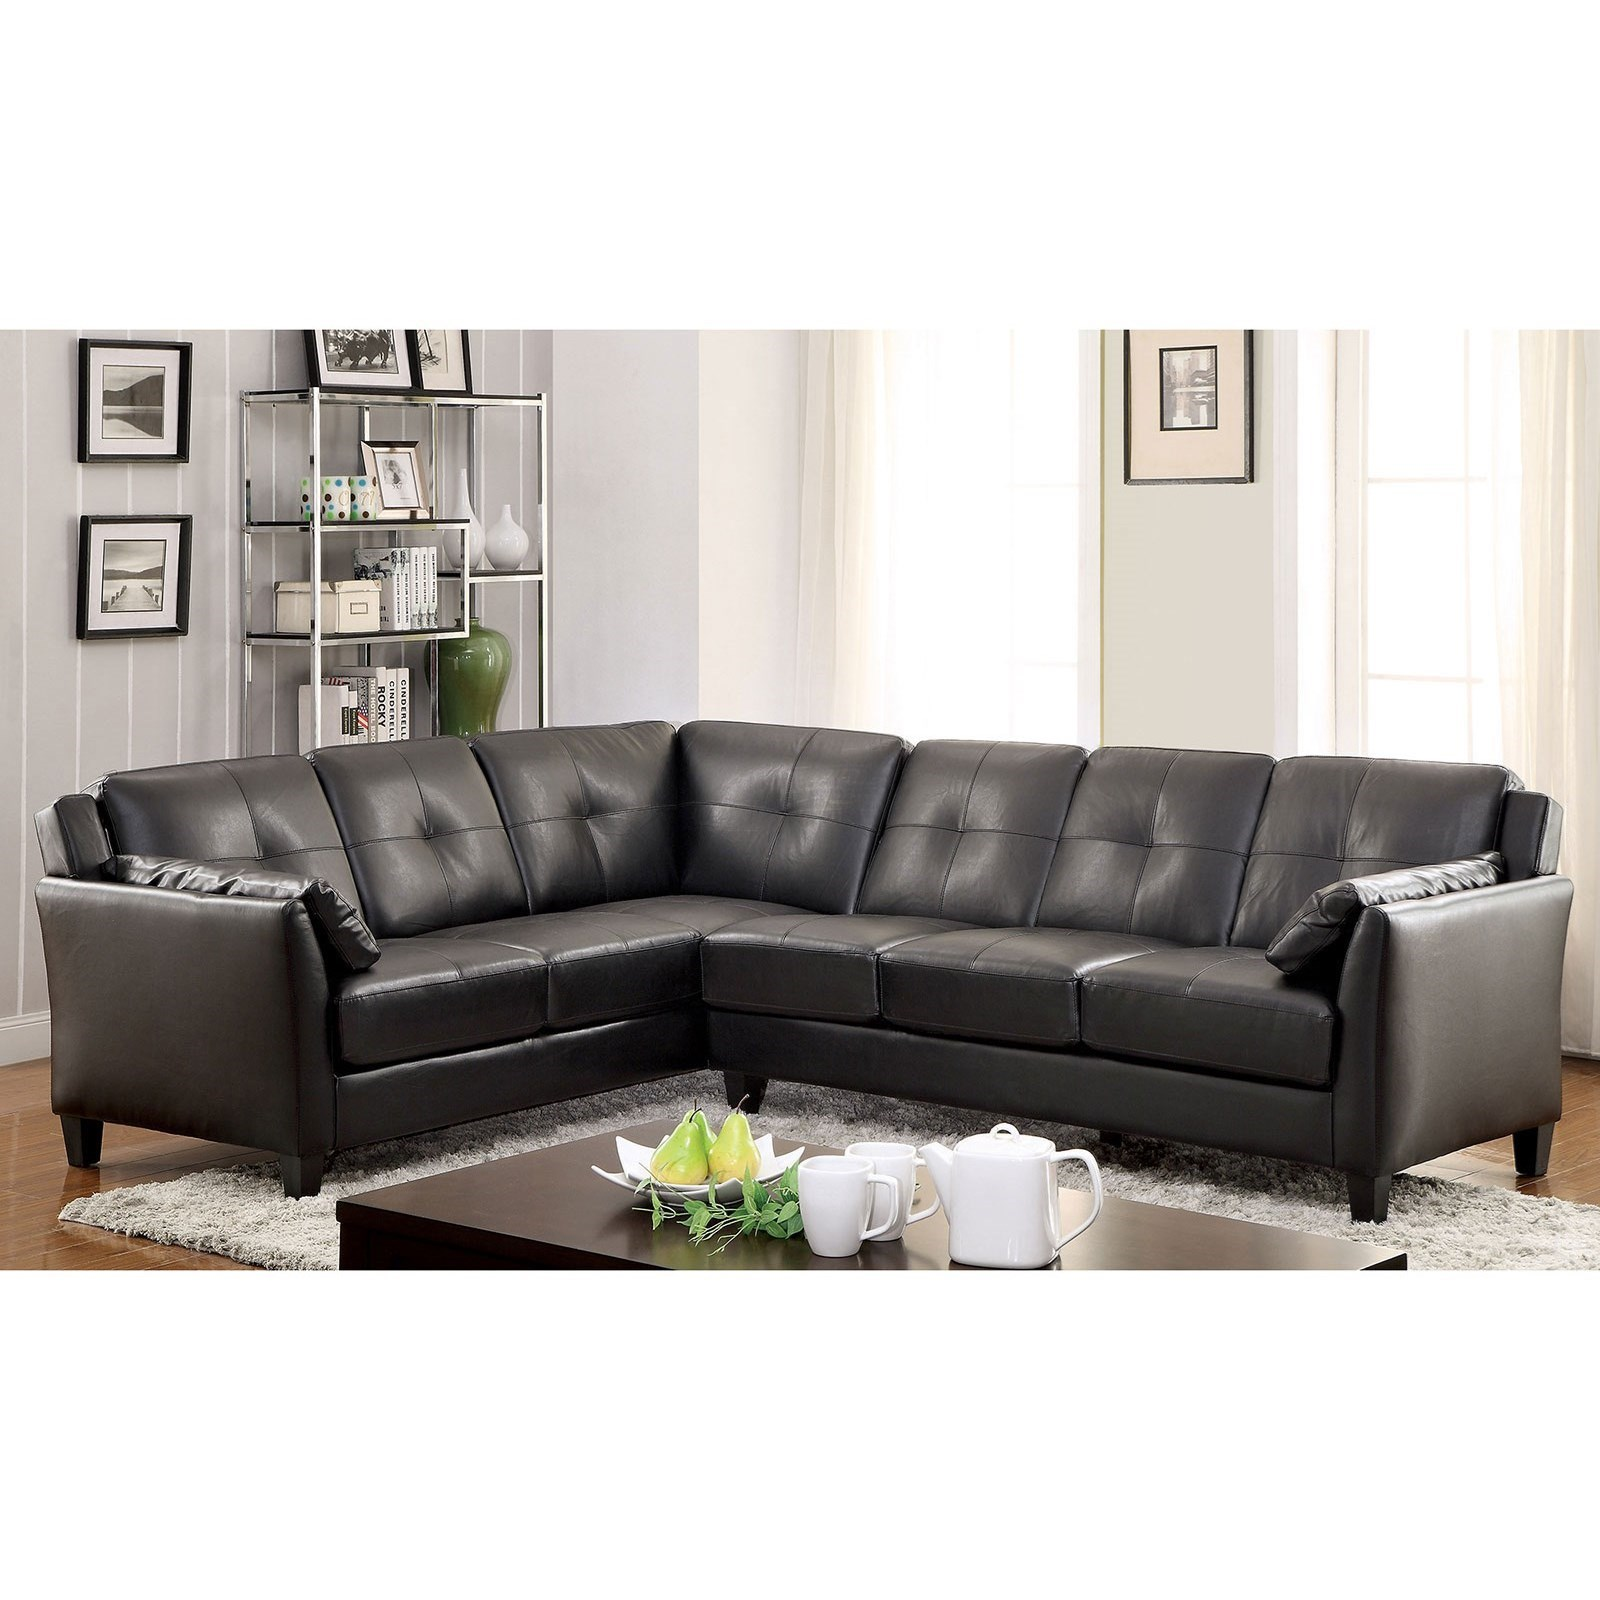 Furniture Of America Peever I Faux Leather Sectional Sofa With